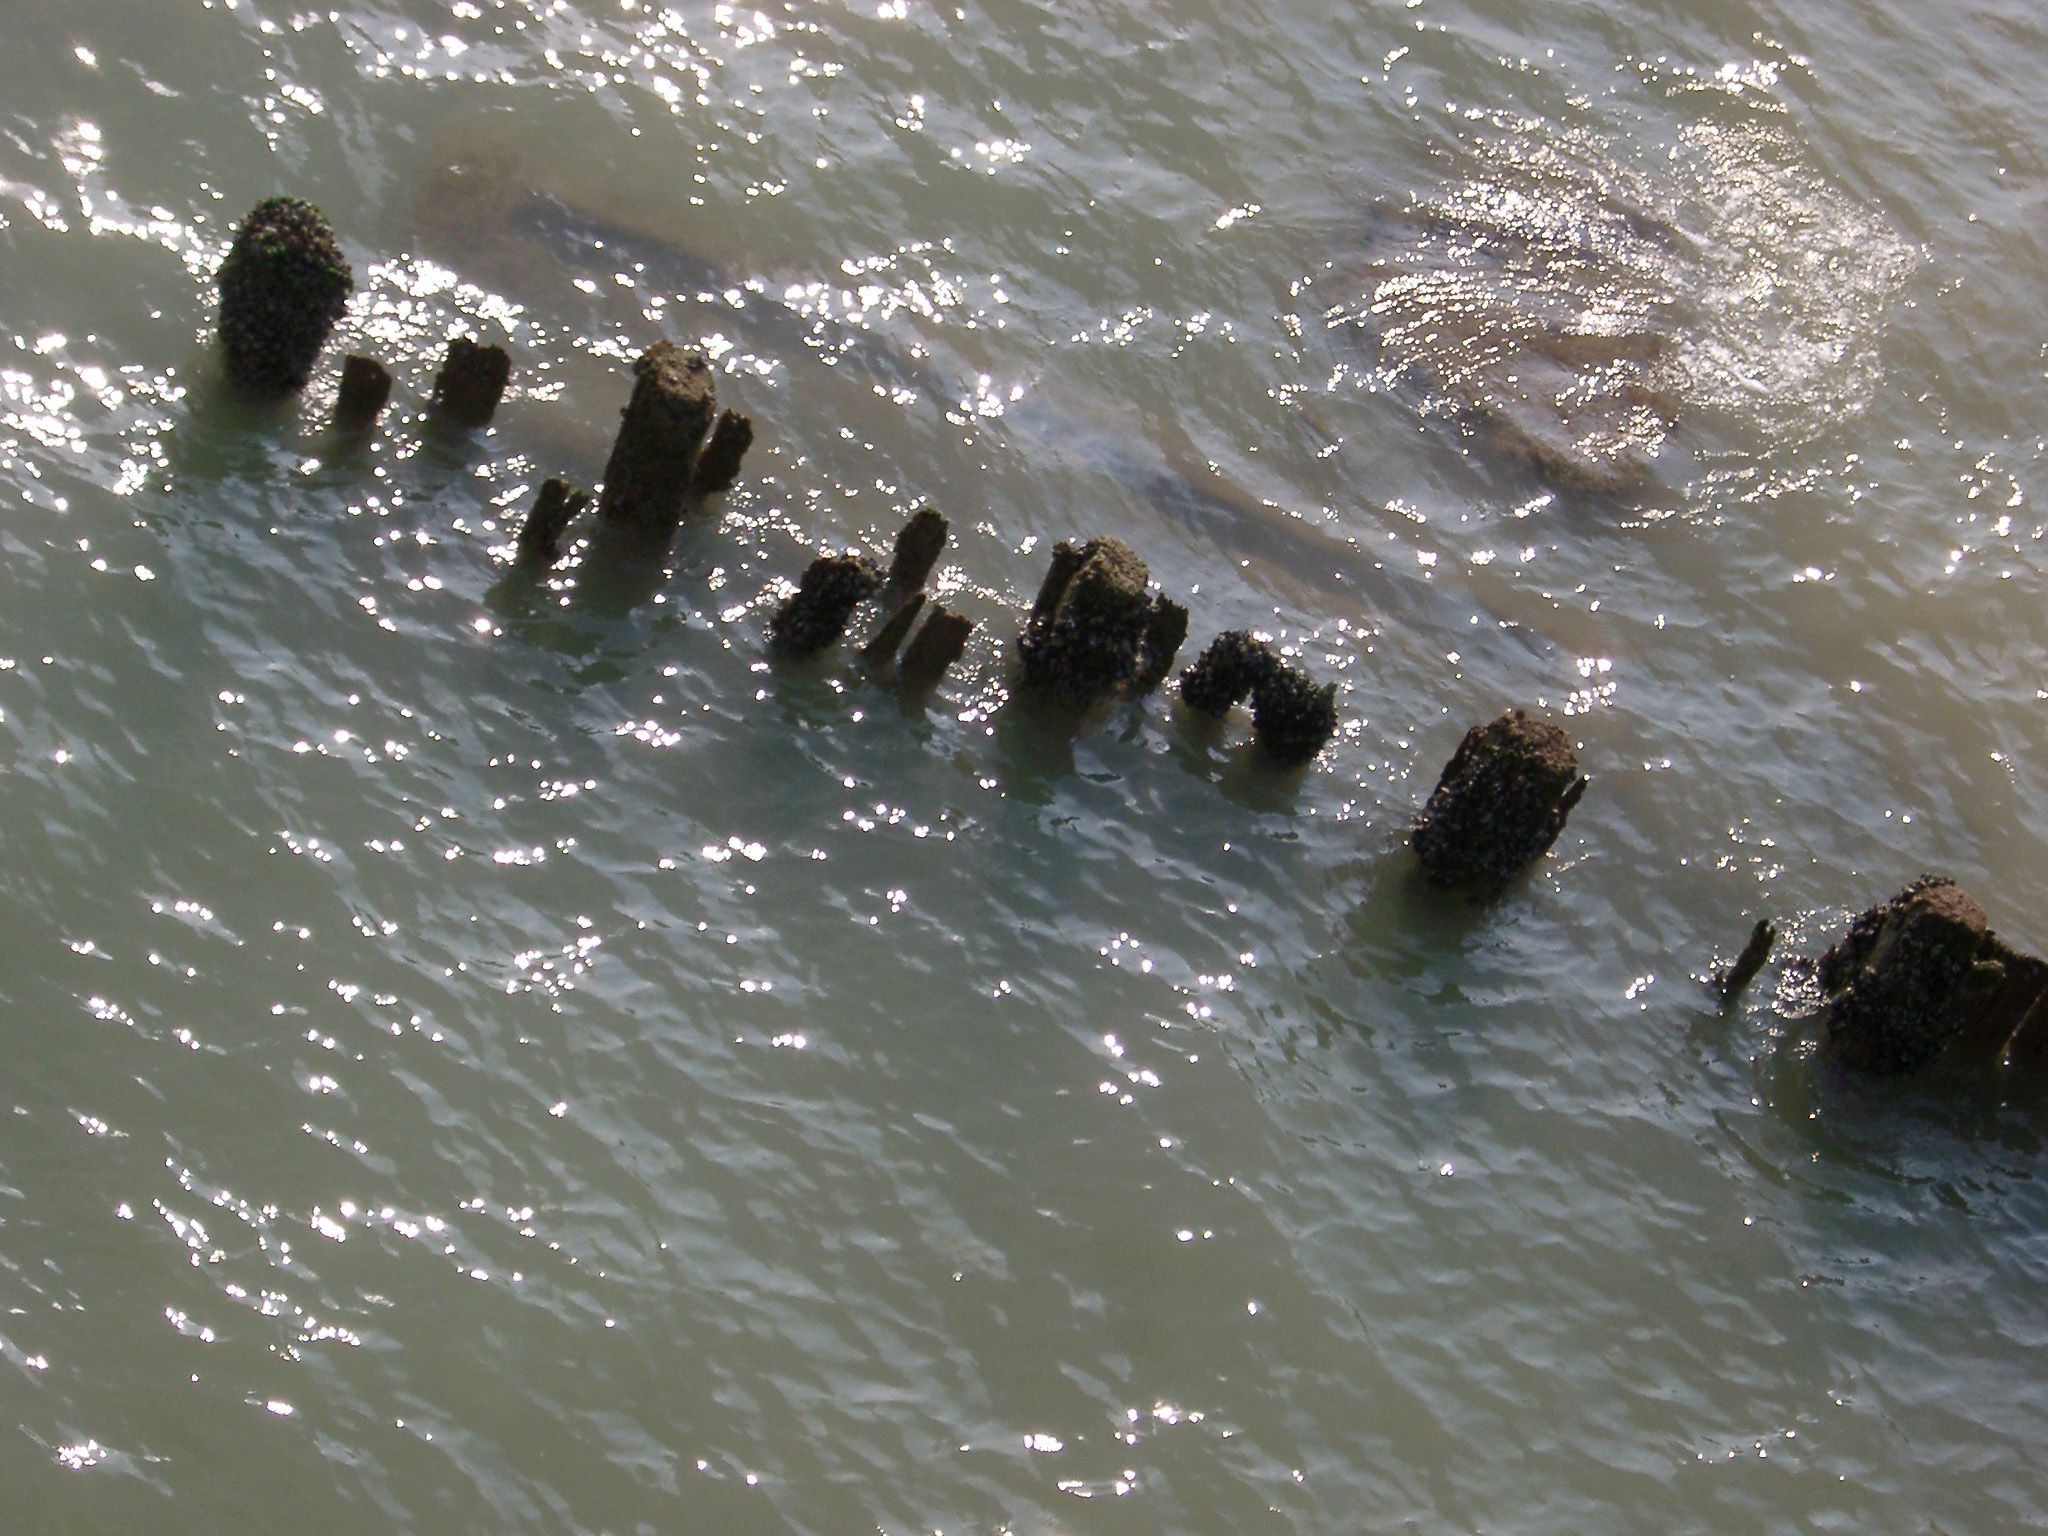 Old Rotten Wooden Groynes on the Sea Water in Brighton, England